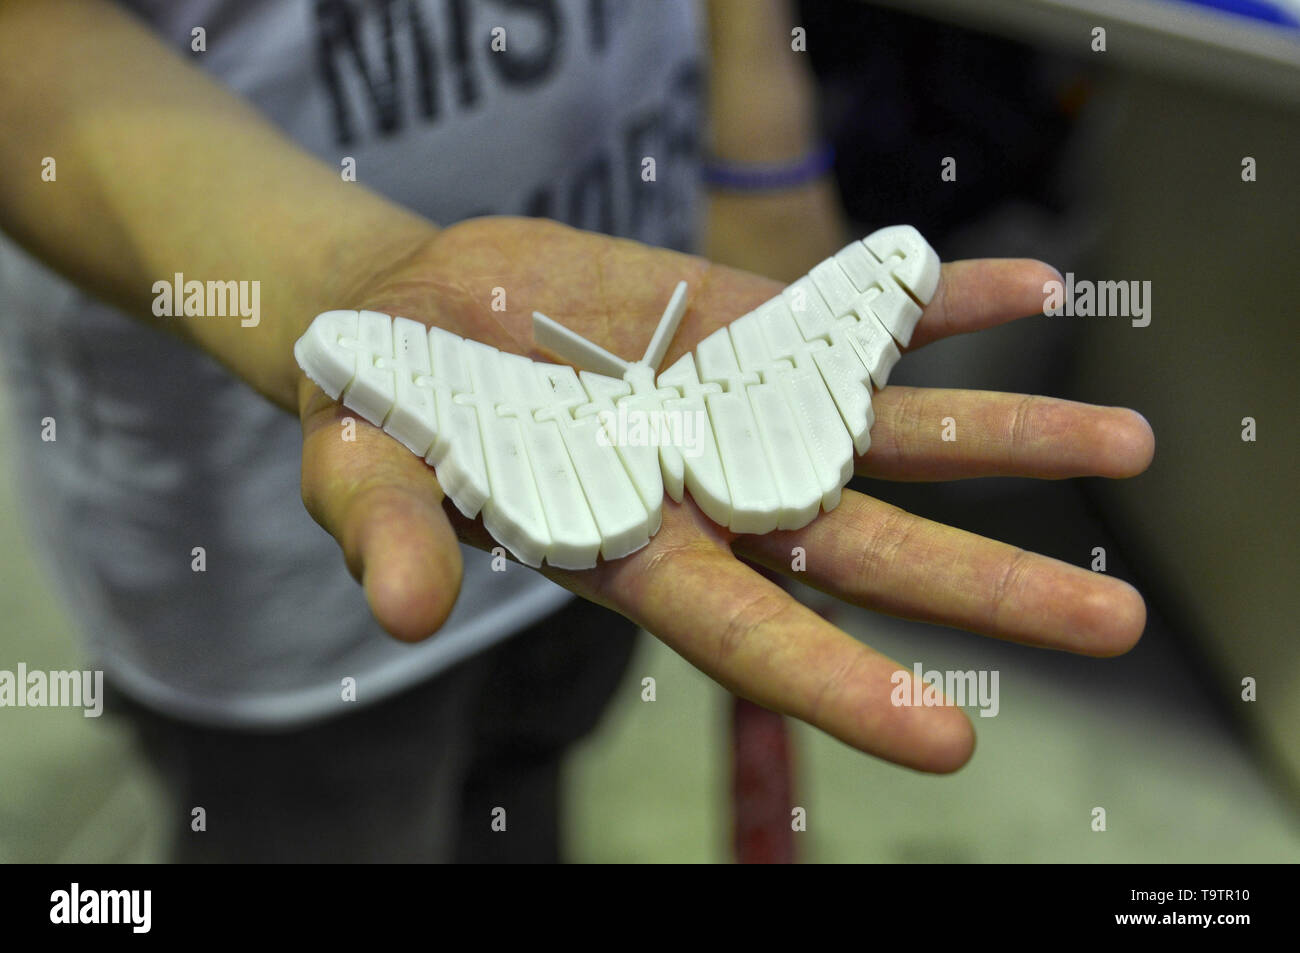 Turin, Piedmont, Italy. June 3 2018. At the Fablab in Turin a demo with a three-dimensional printer at work. In the hand a butterfly, made in 3D print - Stock Image